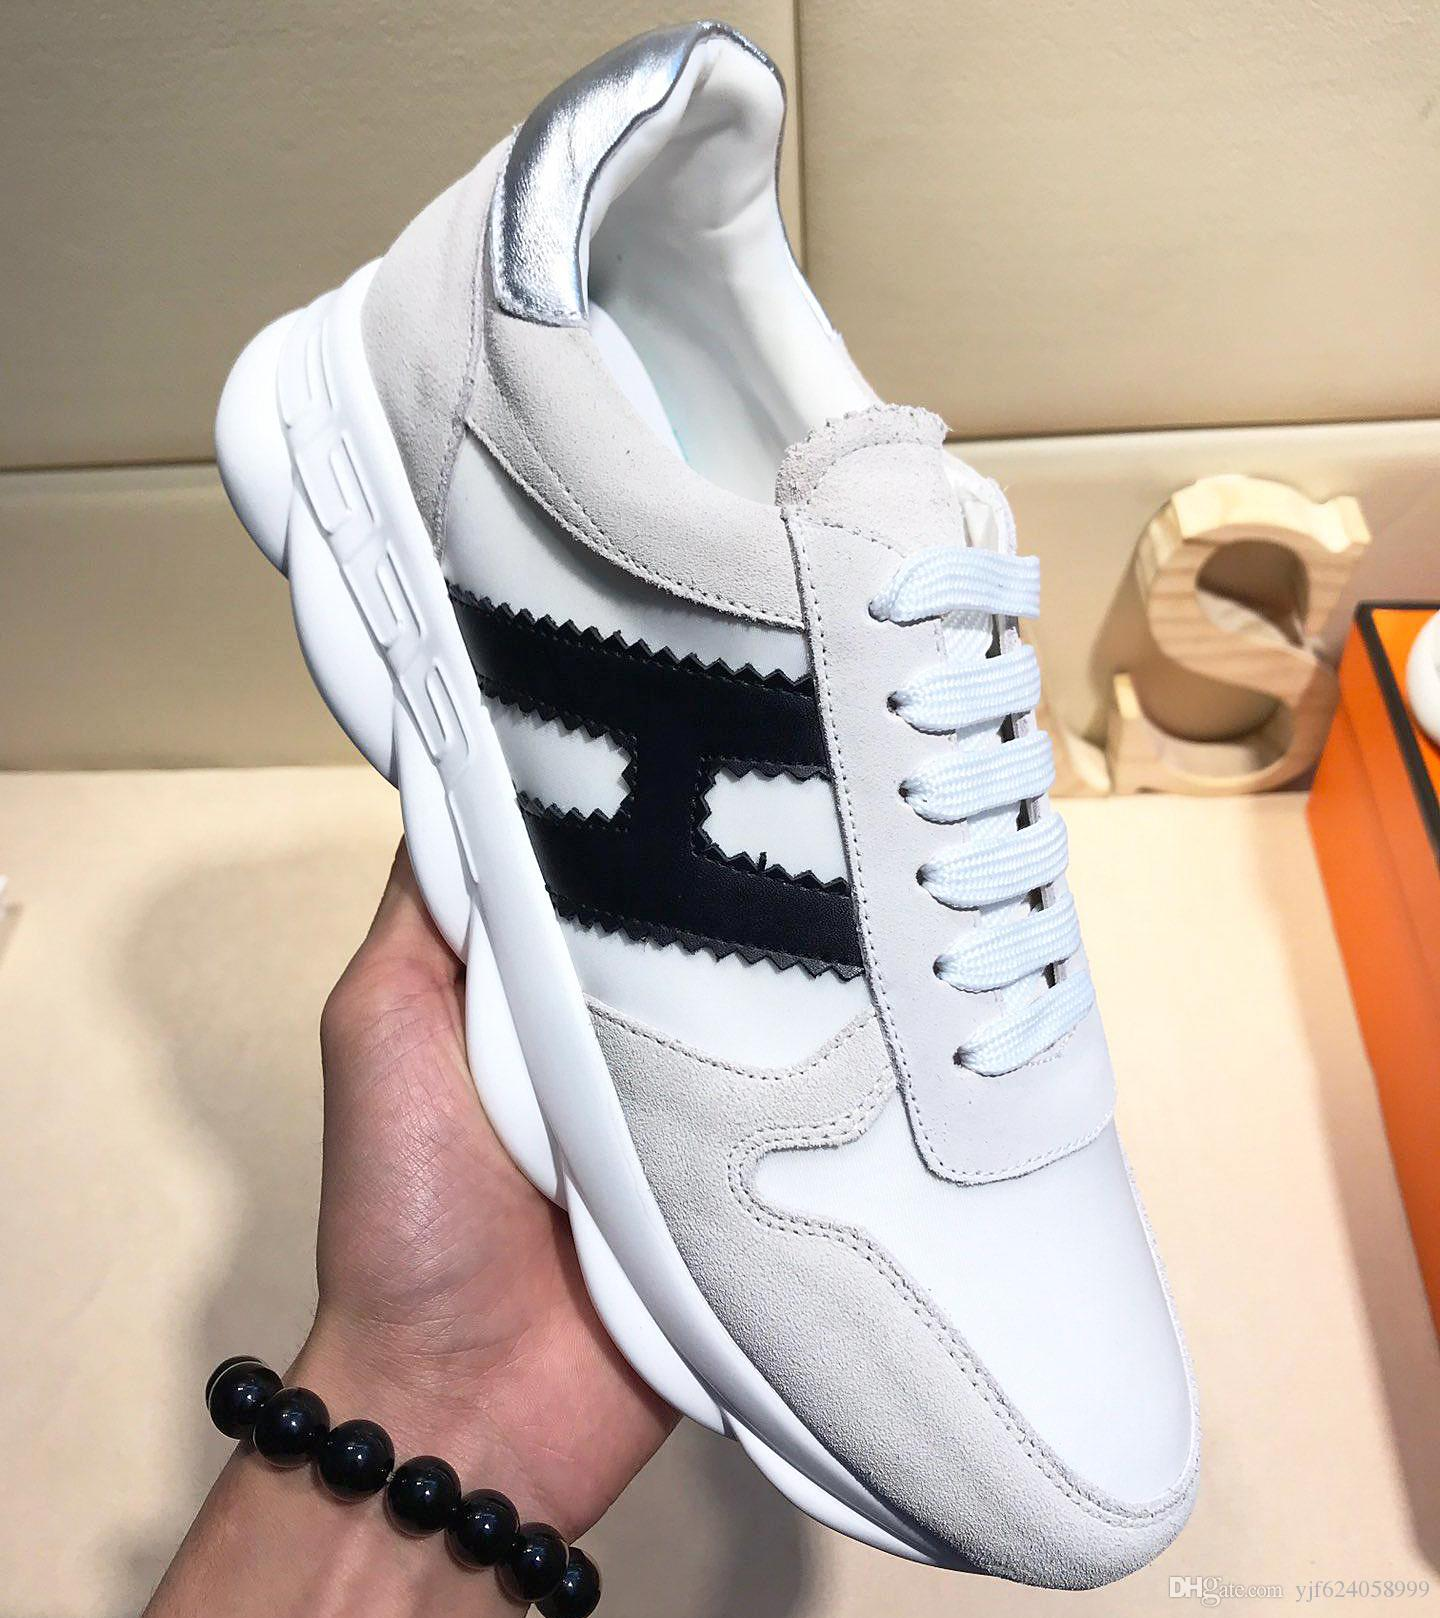 New highquality fashion mens casual shoes, design shoes mens sports shoes, fashion leather laceup shoes with original packaging qt